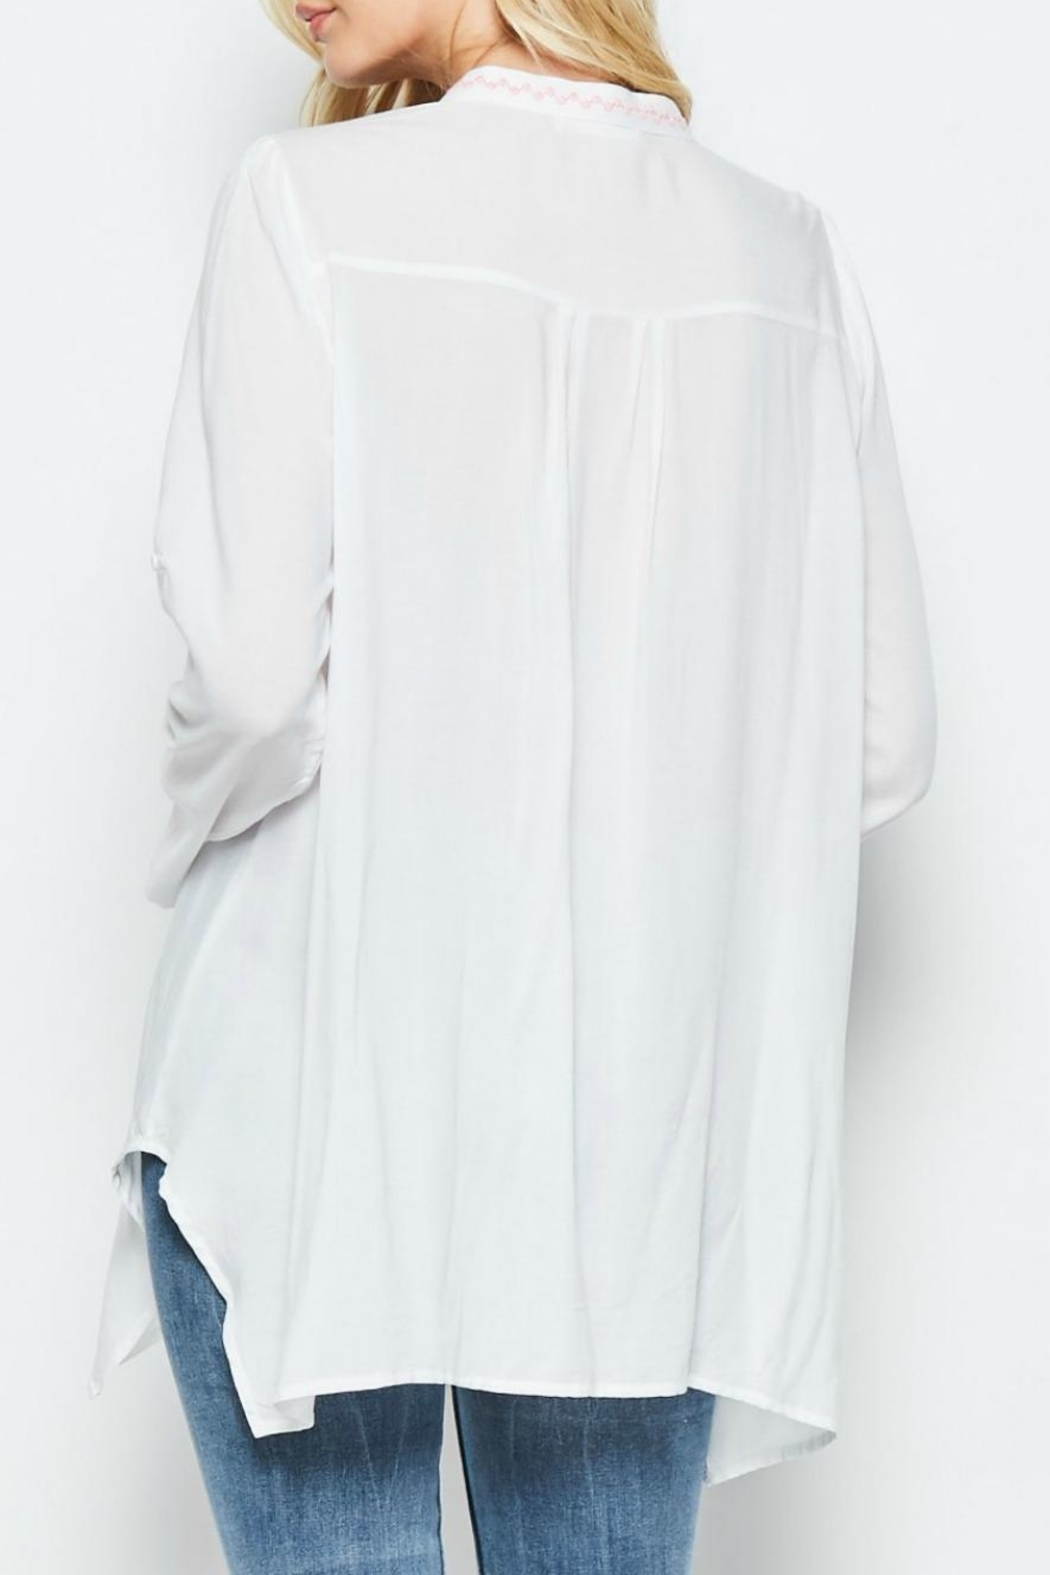 Andree by Unit Embroidered White Tunic - Side Cropped Image